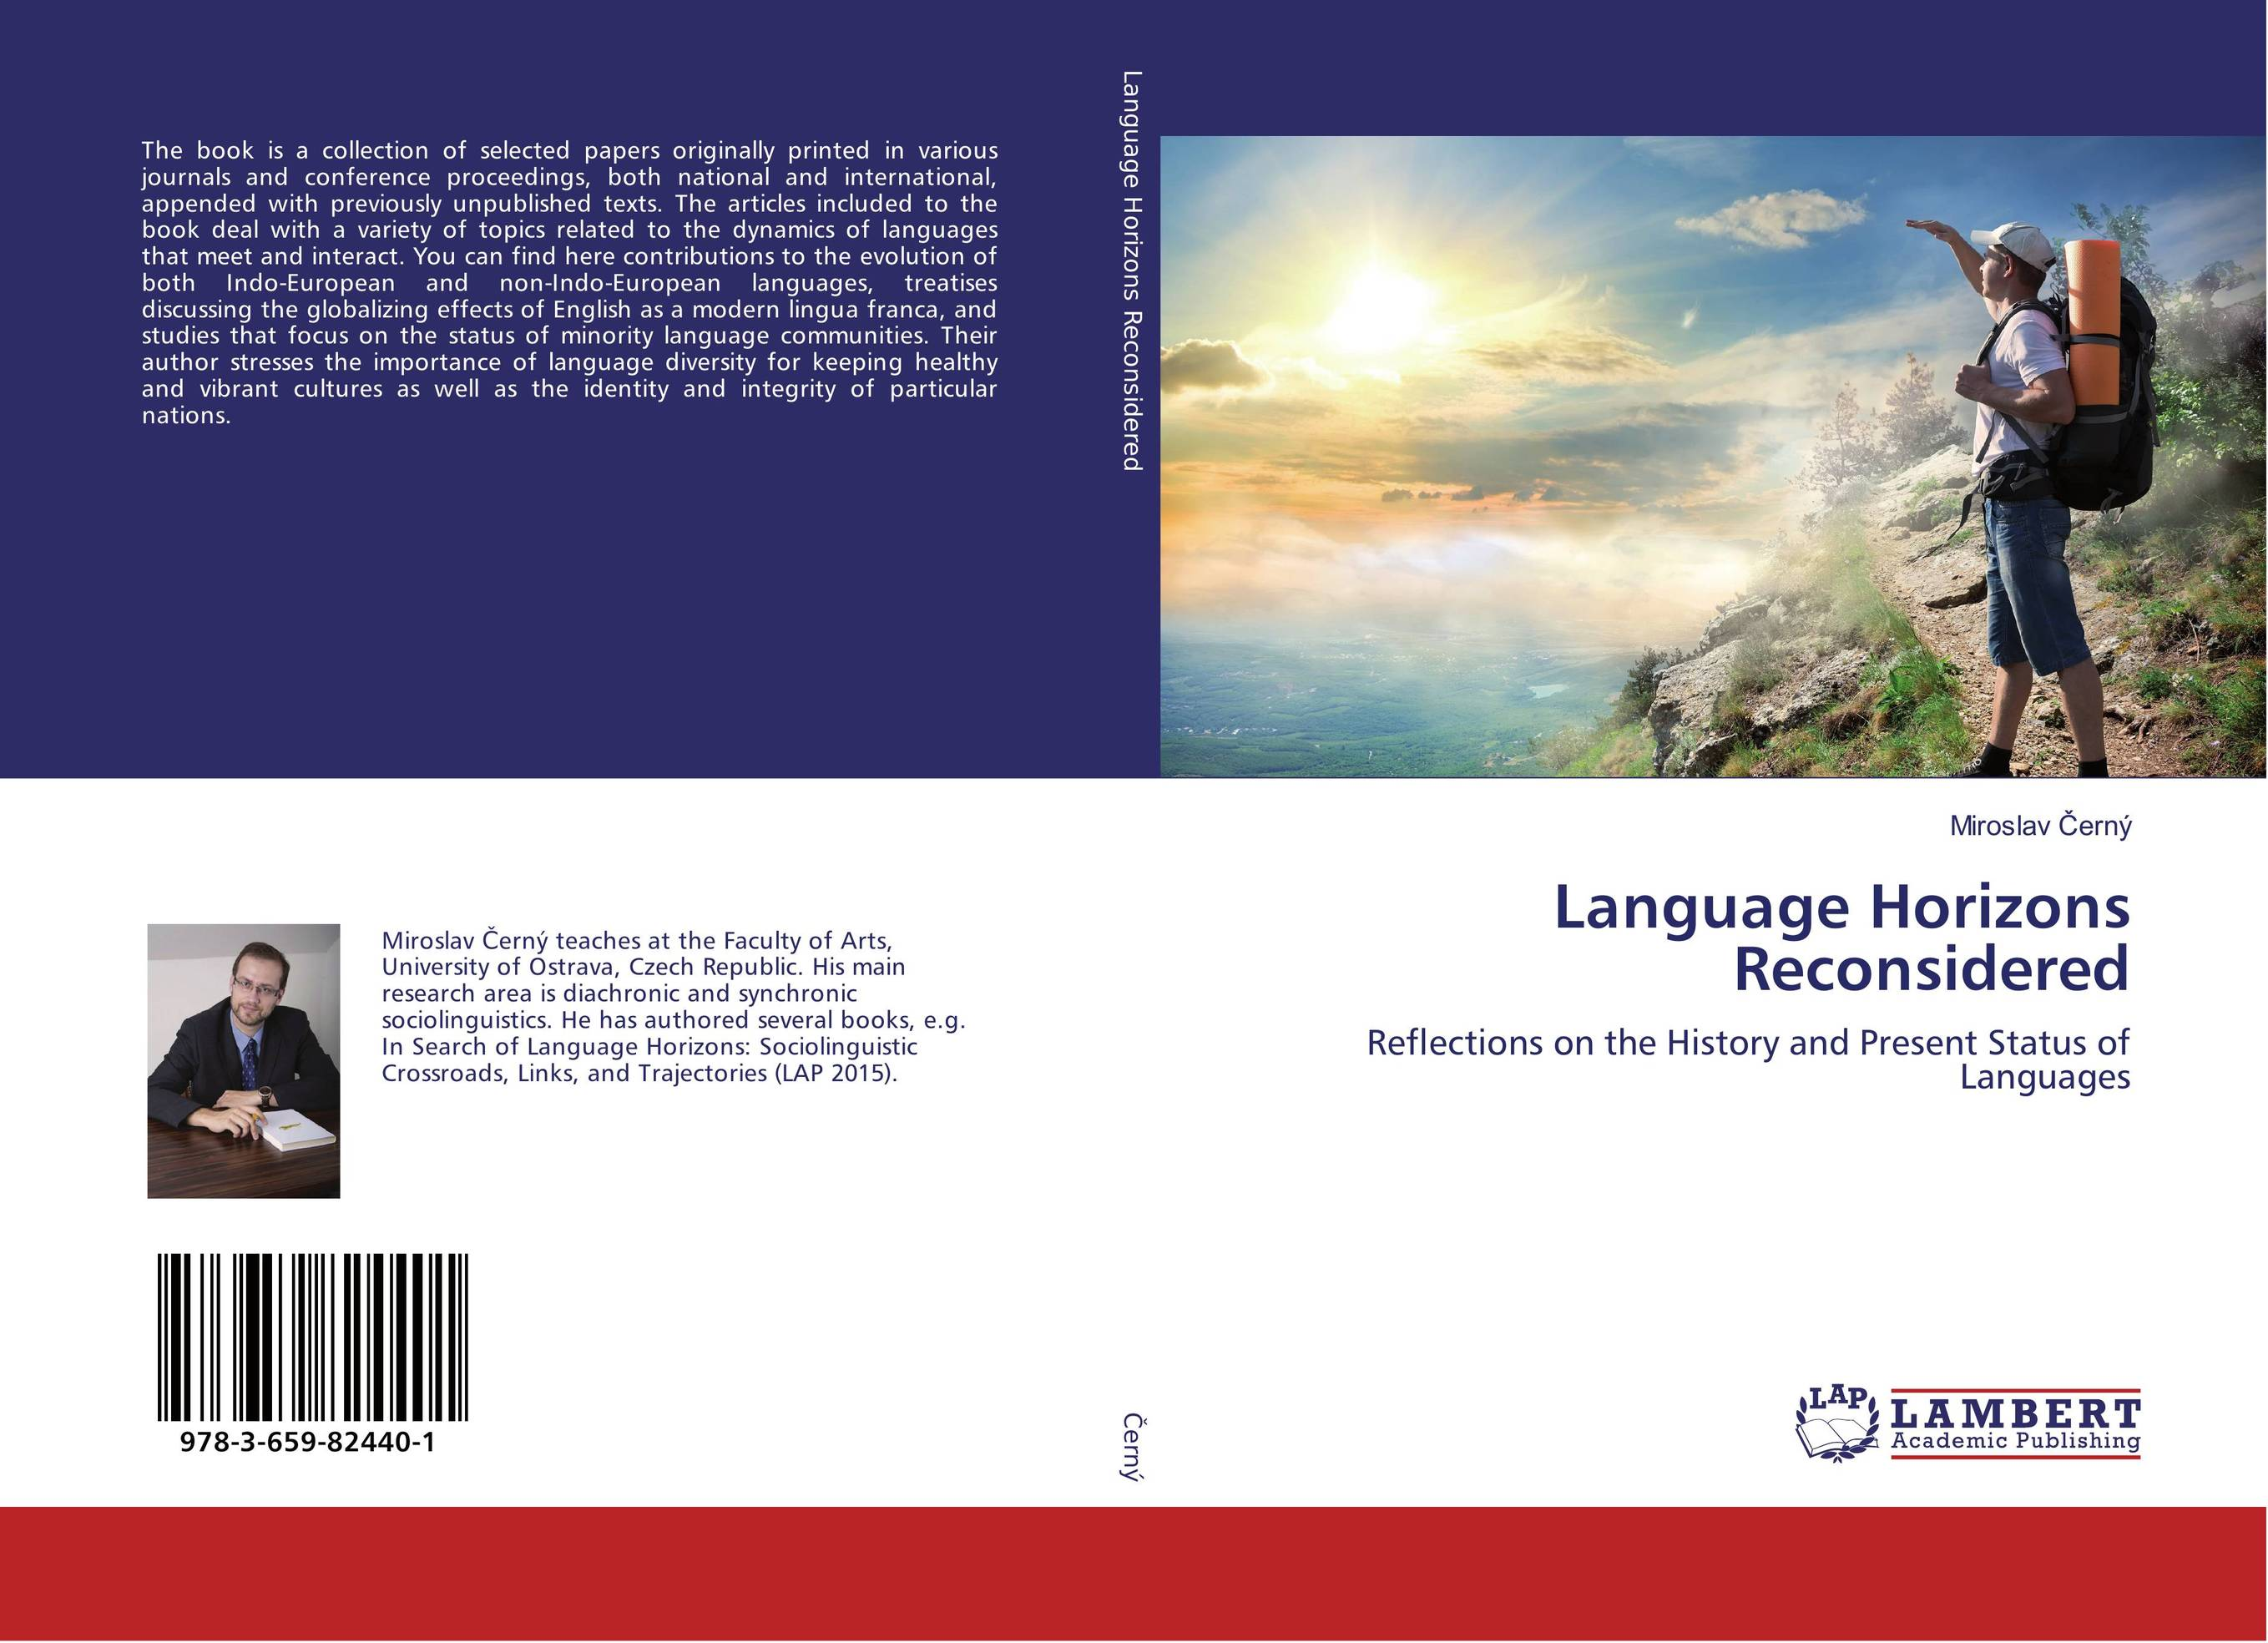 Language Horizons Reconsidered сборник статей advances of science proceedings of articles the international scientific conference czech republic karlovy vary – russia moscow 29–30 march 2016